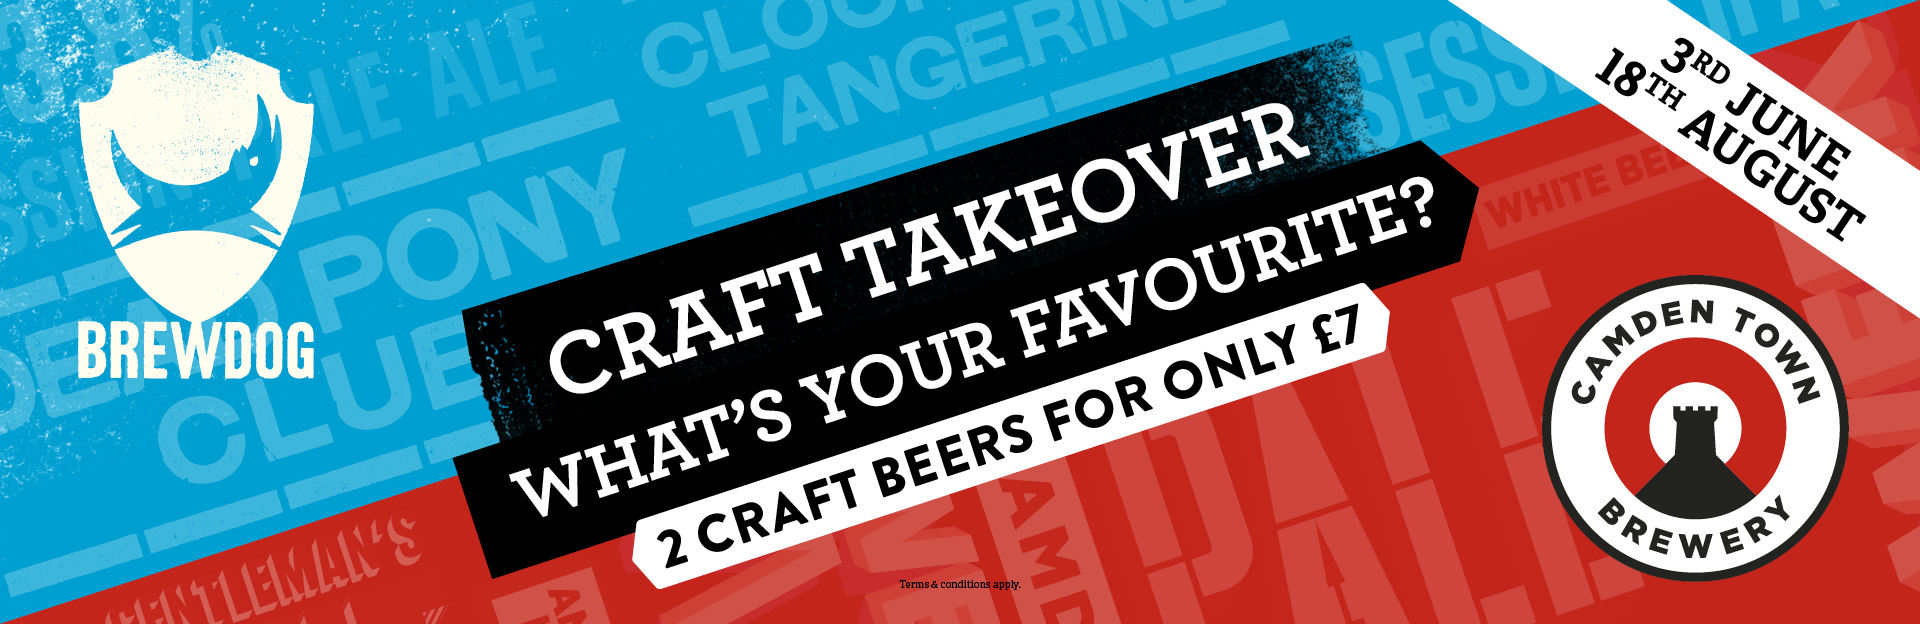 Craft Takeover at Red Lion Hotel